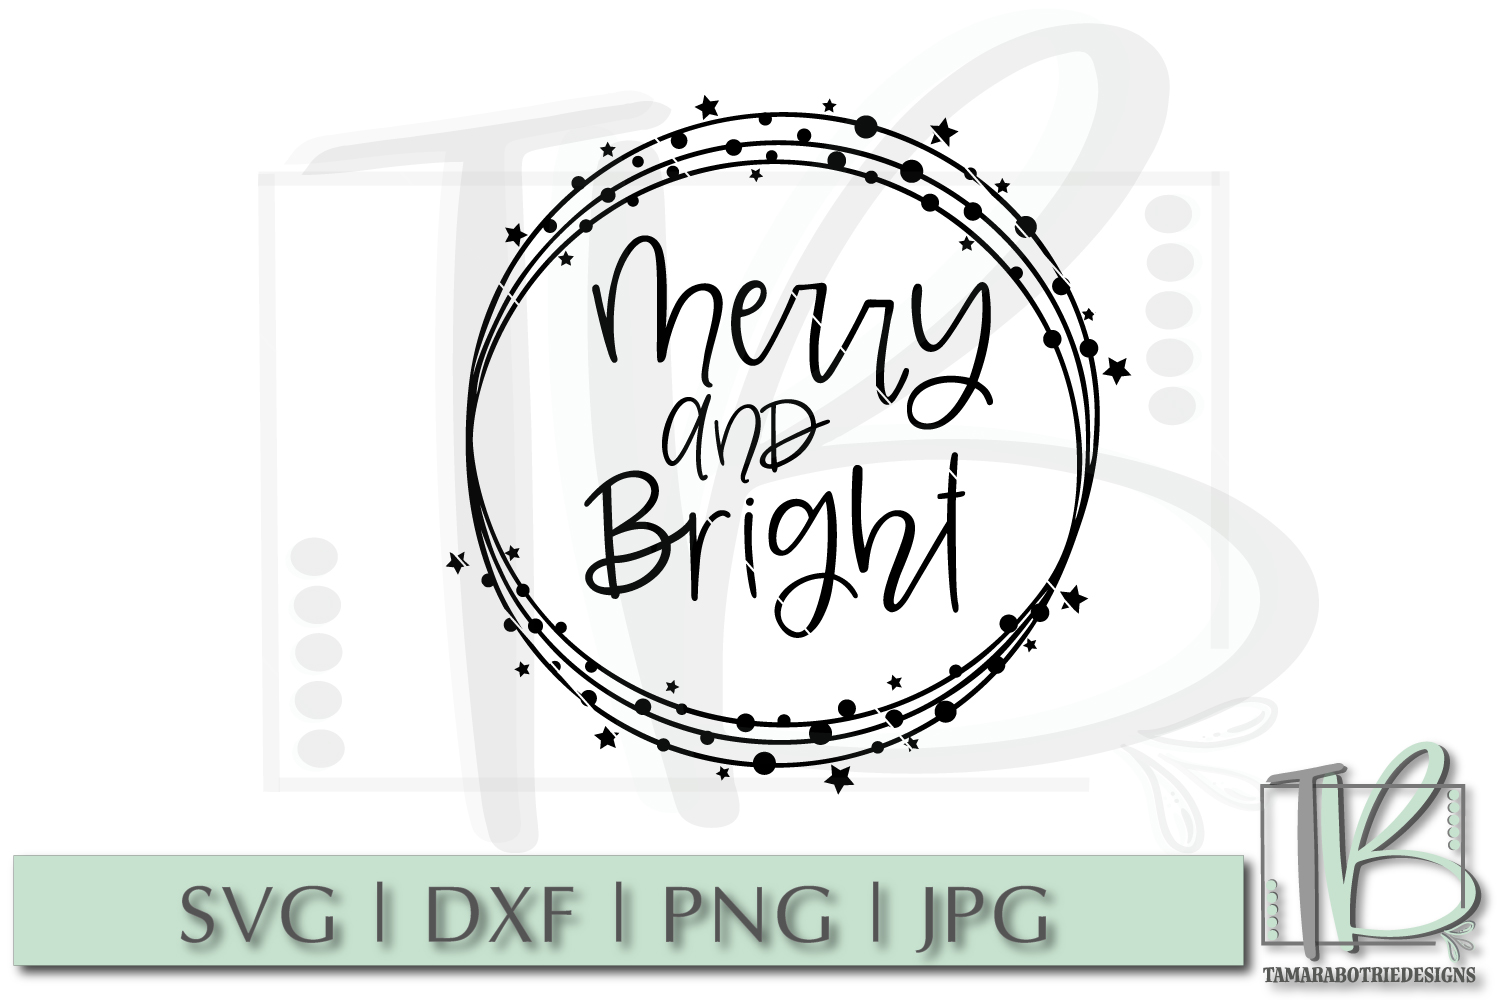 Merry and Bright SVG, Christmas Cut file example image 2